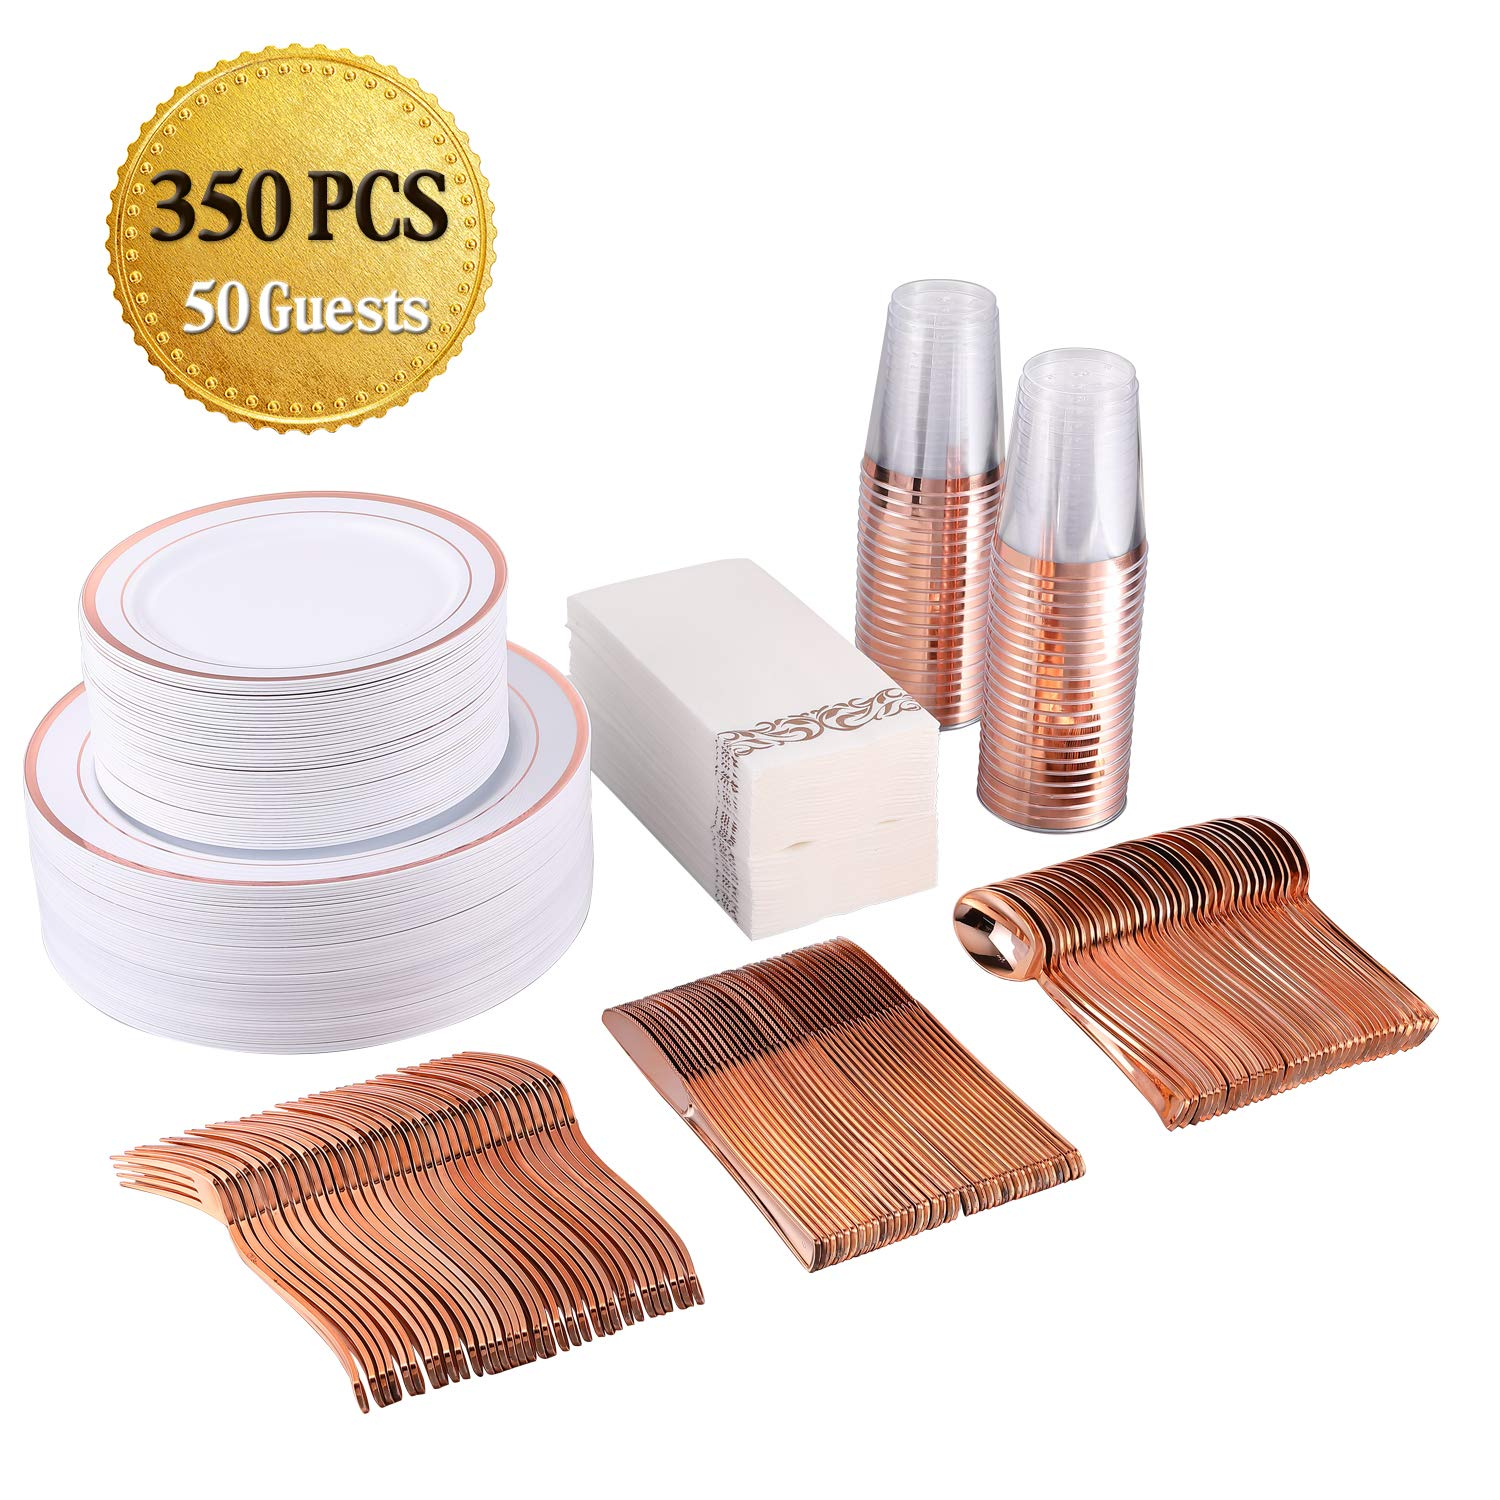 FOCUS LINE 350 Piece Disposable Rose Gold Dinnerware Set for Party or Wedding-100 Plastic Plates - 50 Plastic Silverware - 50 Plastic Cups - 50 Linen Like Rose Gold Paper Napkins(50 Guest) by Focus Line